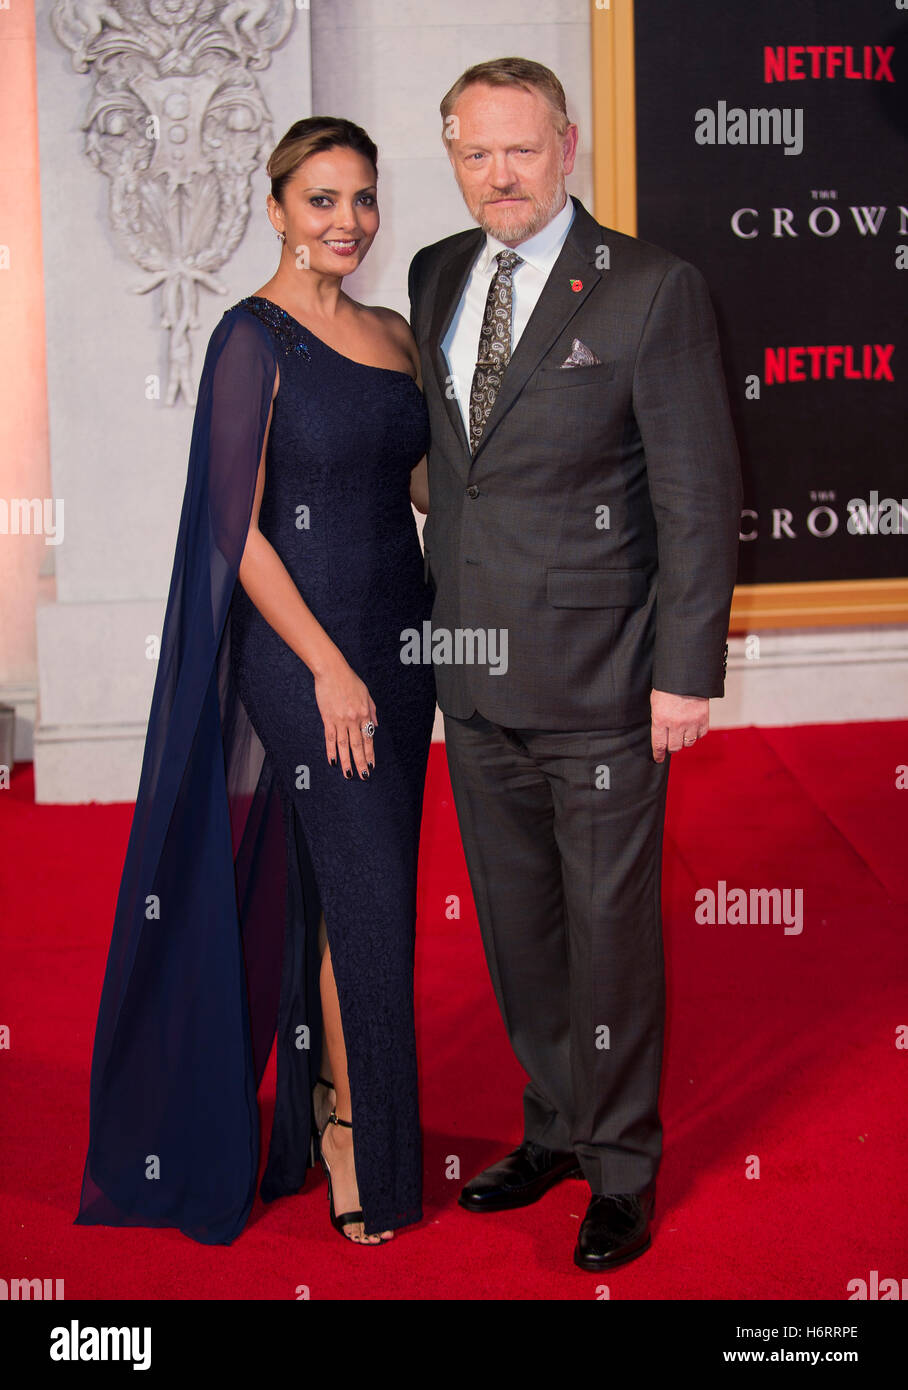 Londres, Royaume-Uni. 1er novembre 2016. Allegra Riggio et Jared Harris assiste à la première mondiale Photo Stock